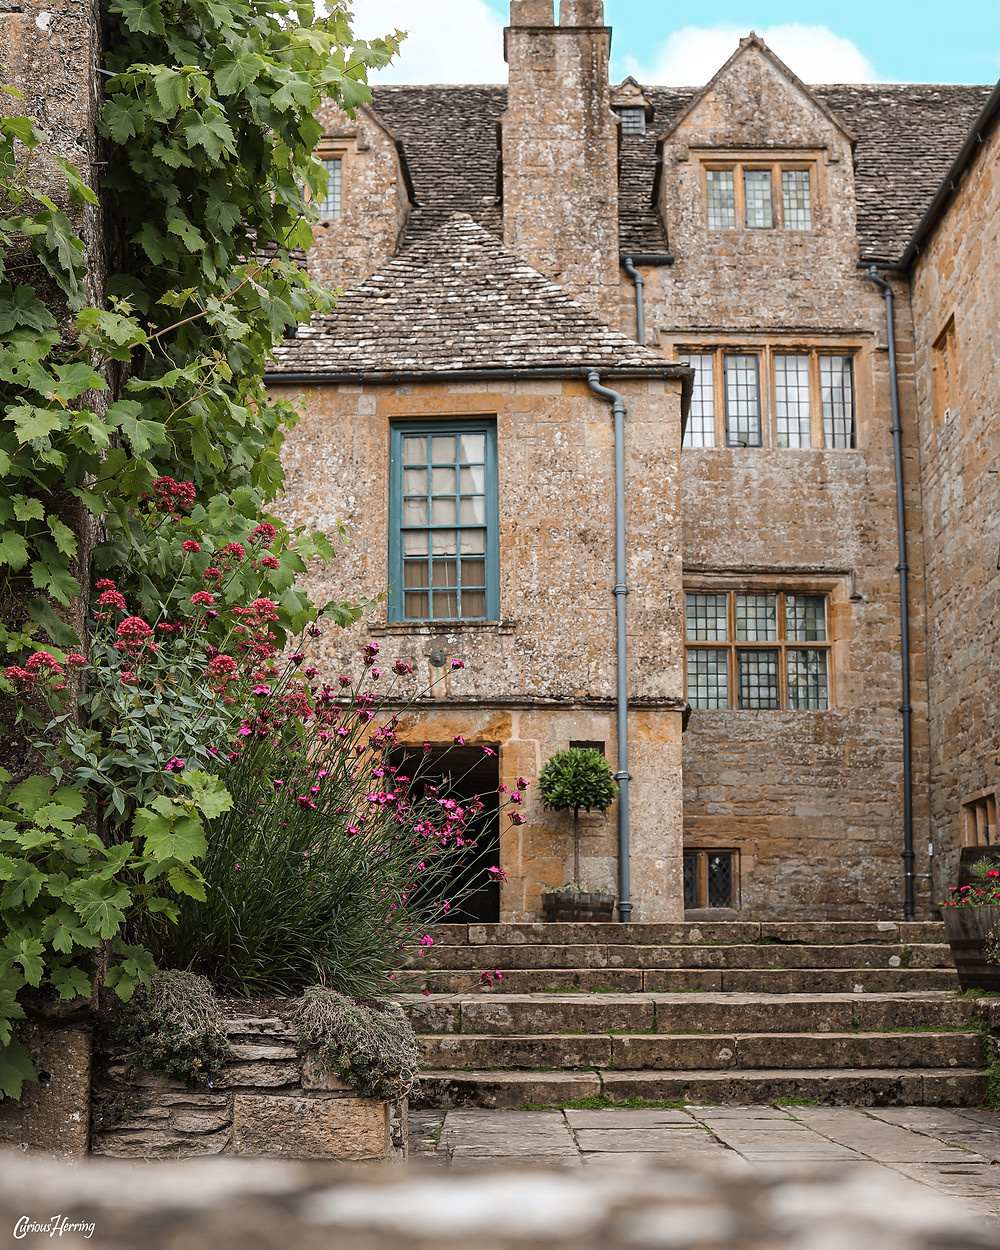 Architecture of Snowshill Manor in the Cotswolds, framed by wild vines and flowers